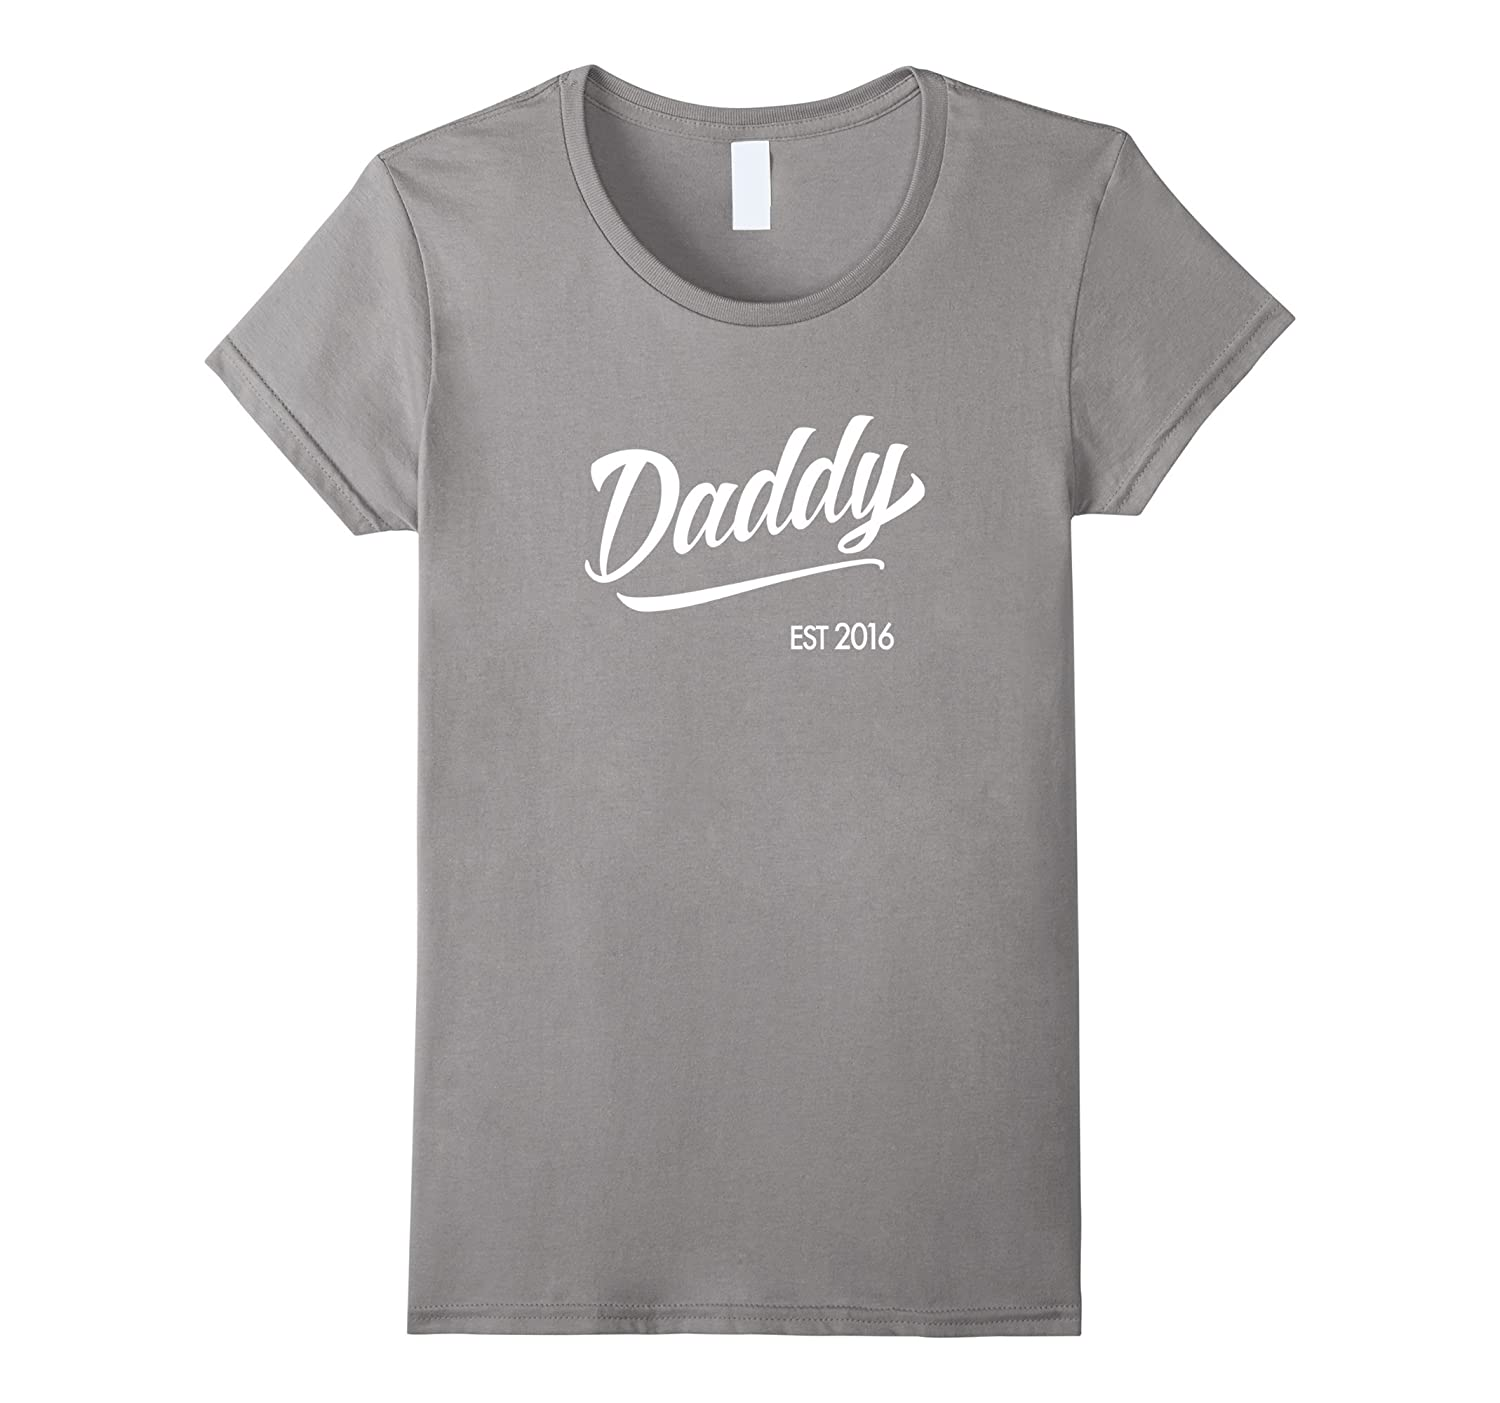 Daddy est 2016 Matching T Shirt Mommy Mom Papa Best Grand Pa